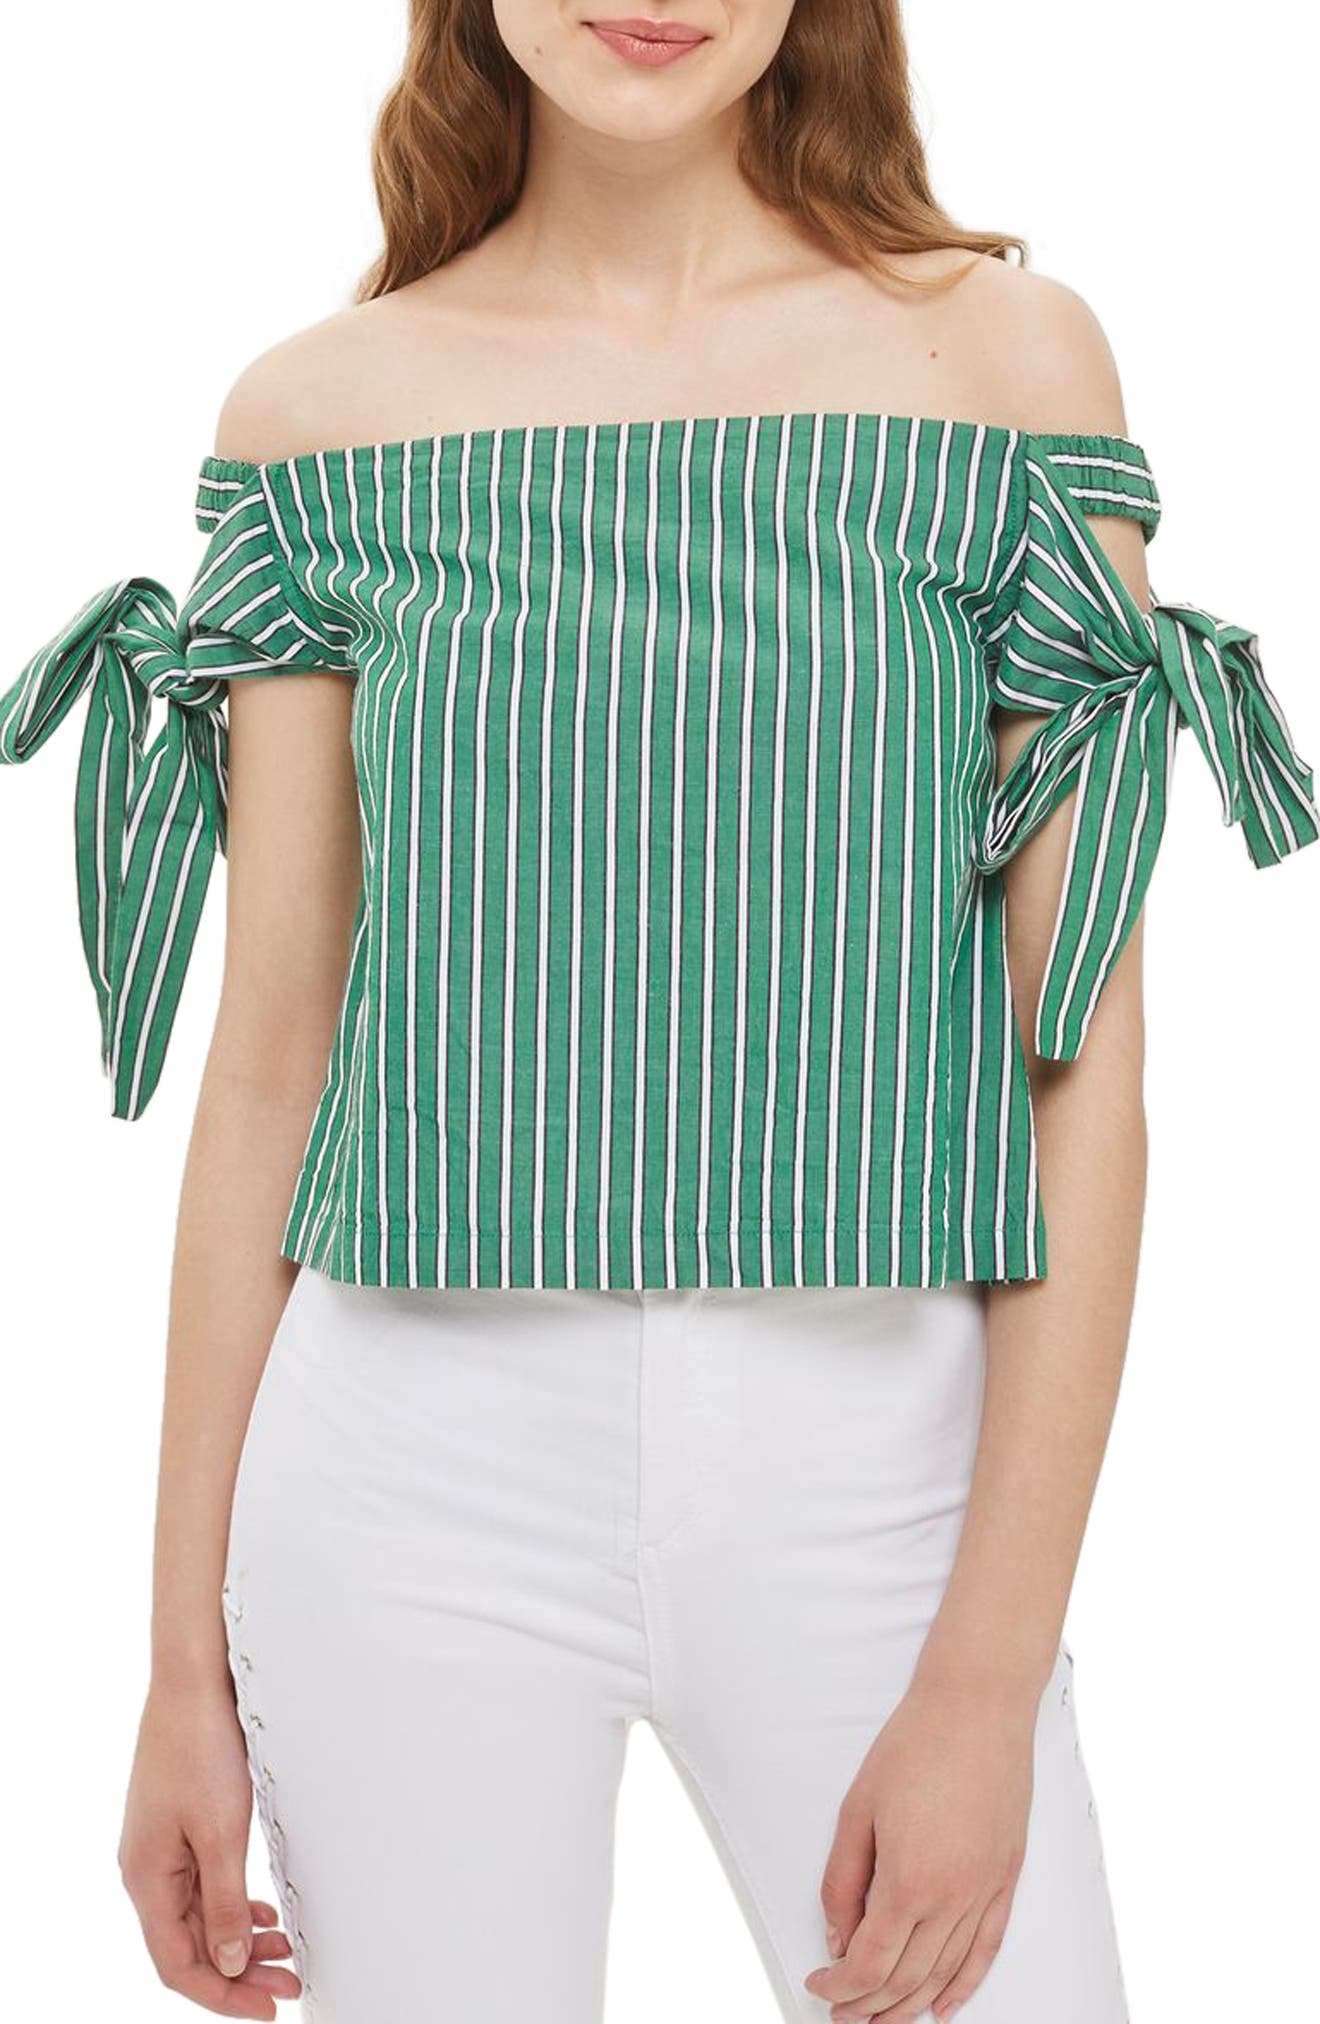 Alternate Image 1 Selected - Topshop Bardot Tie Sleeve Stripe Top